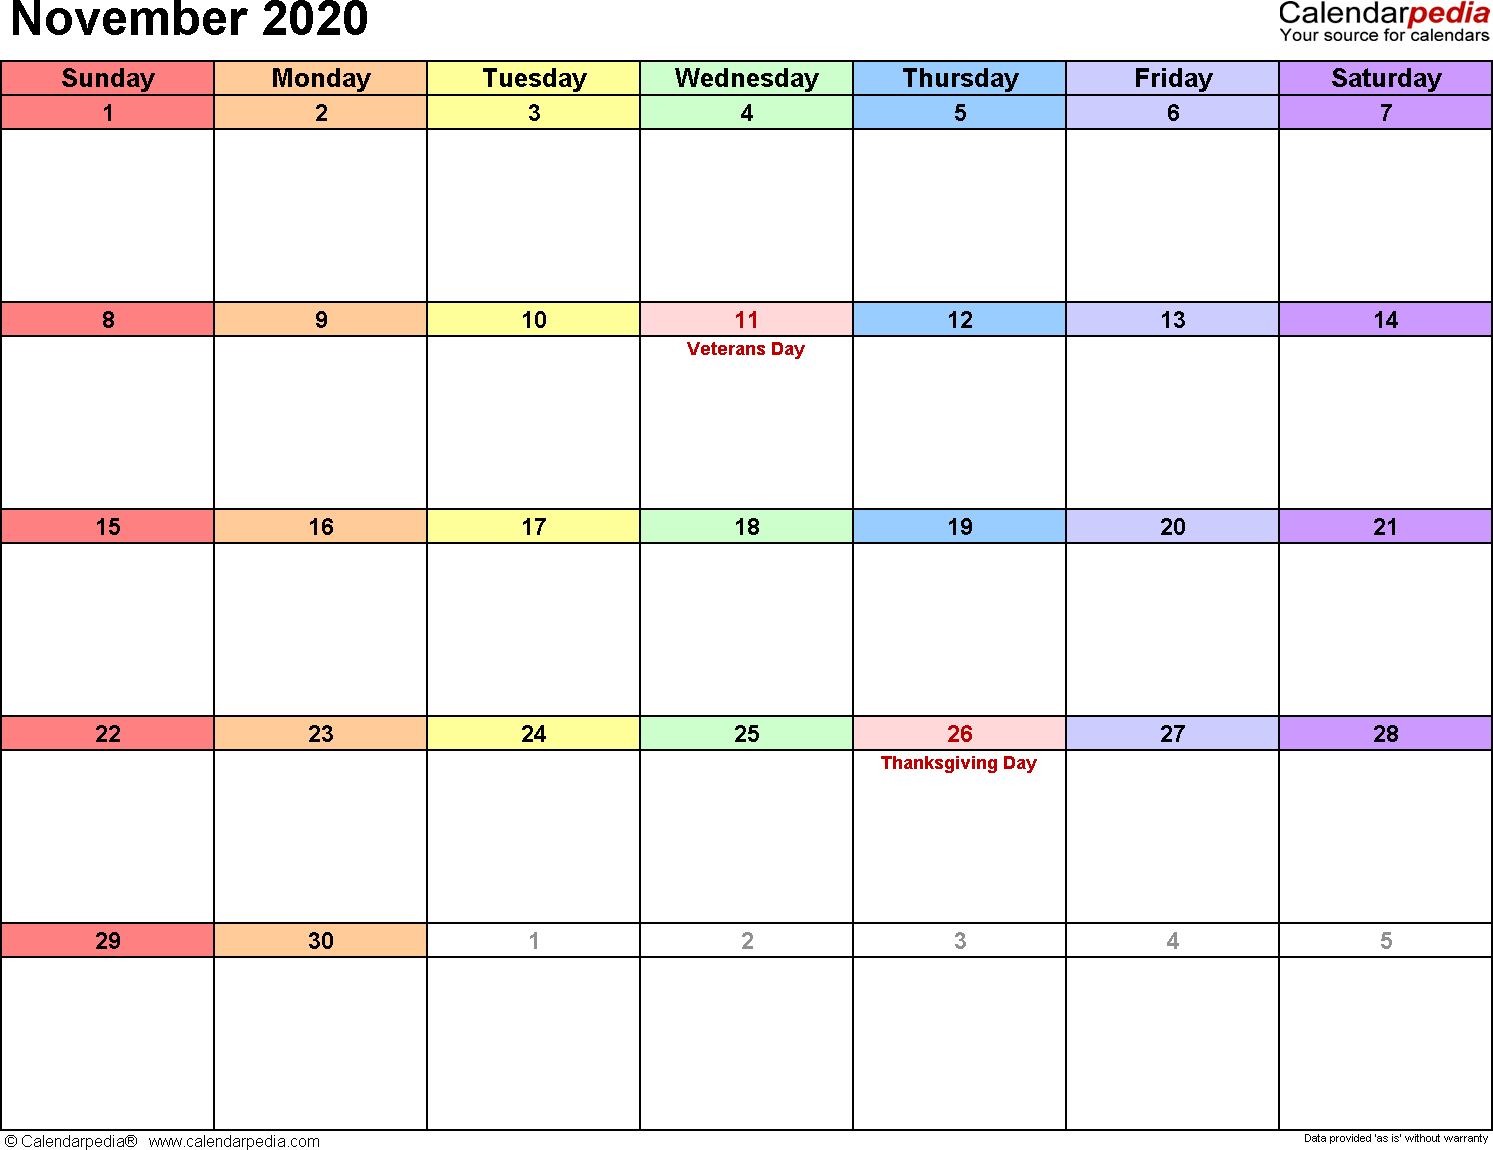 Task Monthly Calendar Templates For September To December 2020 November 2020 Calendars for Word, Excel & PDF